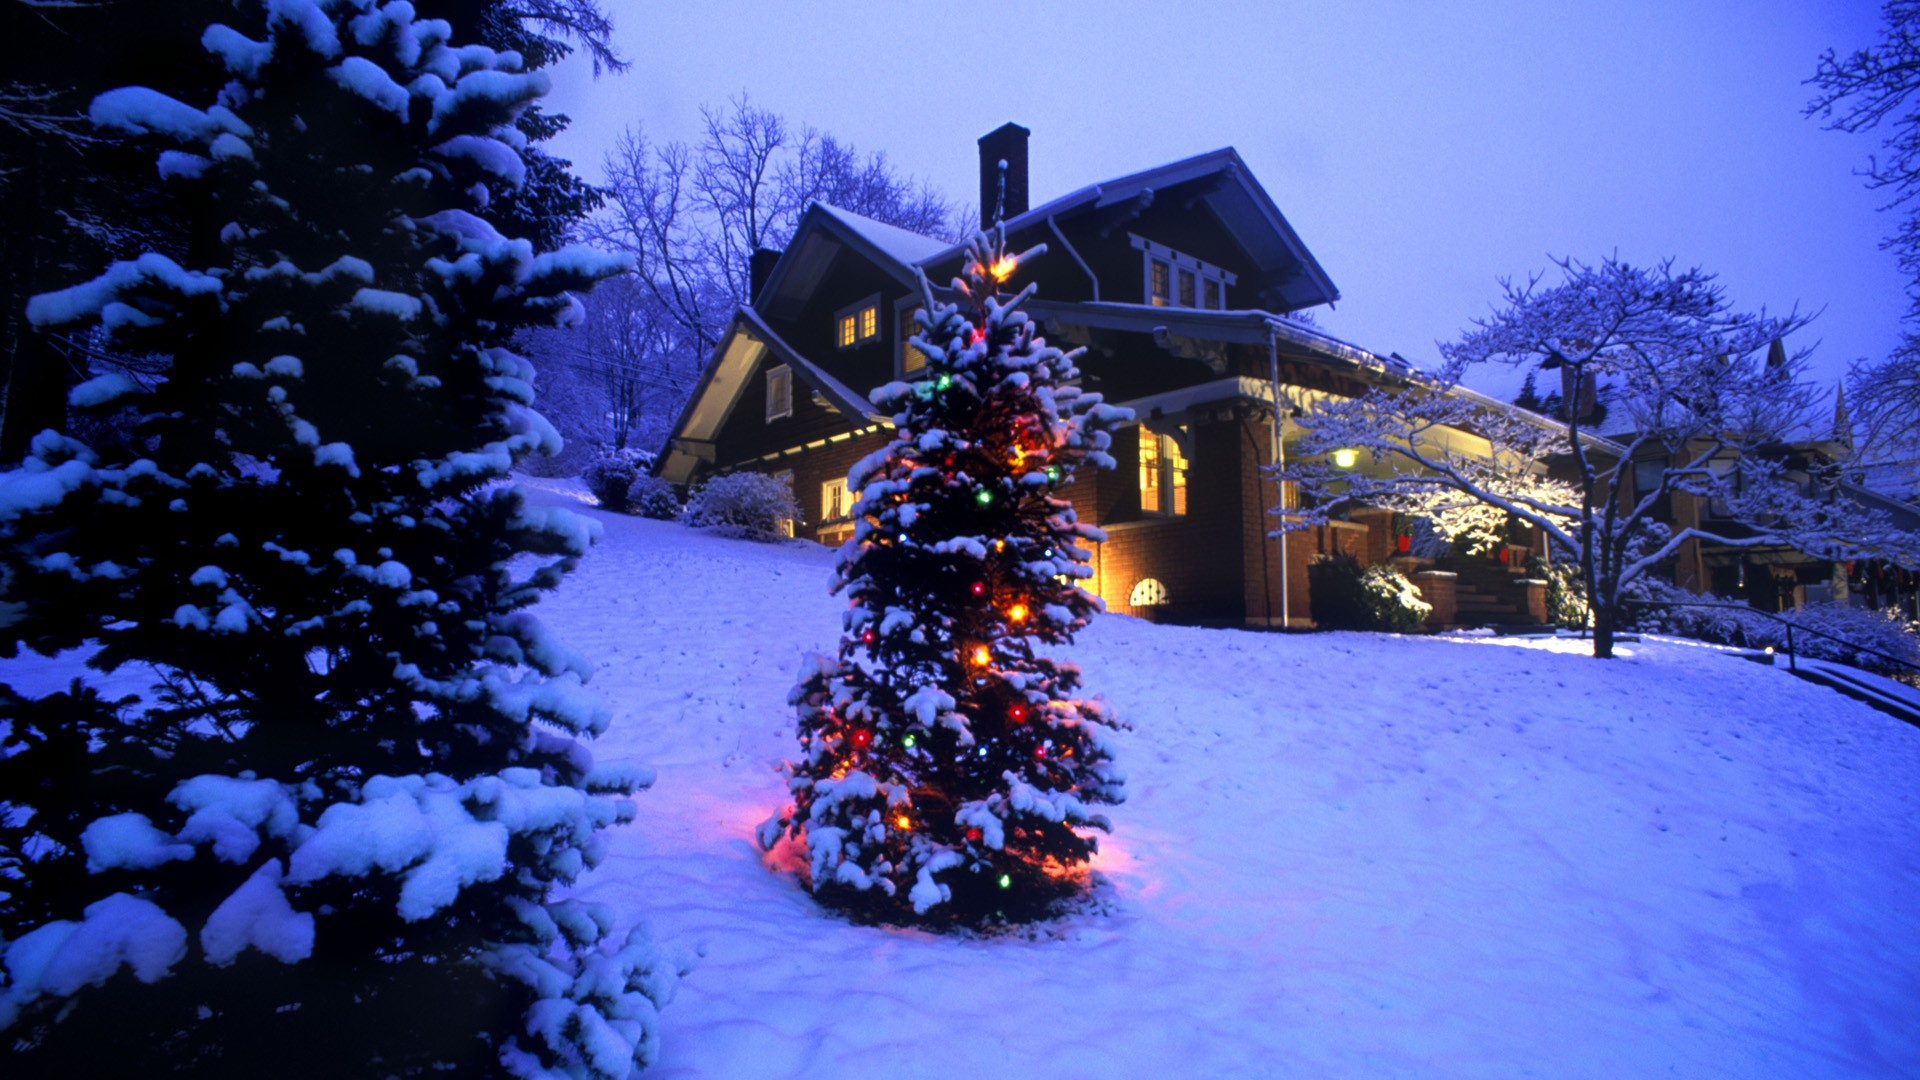 Christmas Snowy Trees Houses Wallpaper | Download cool HD ...